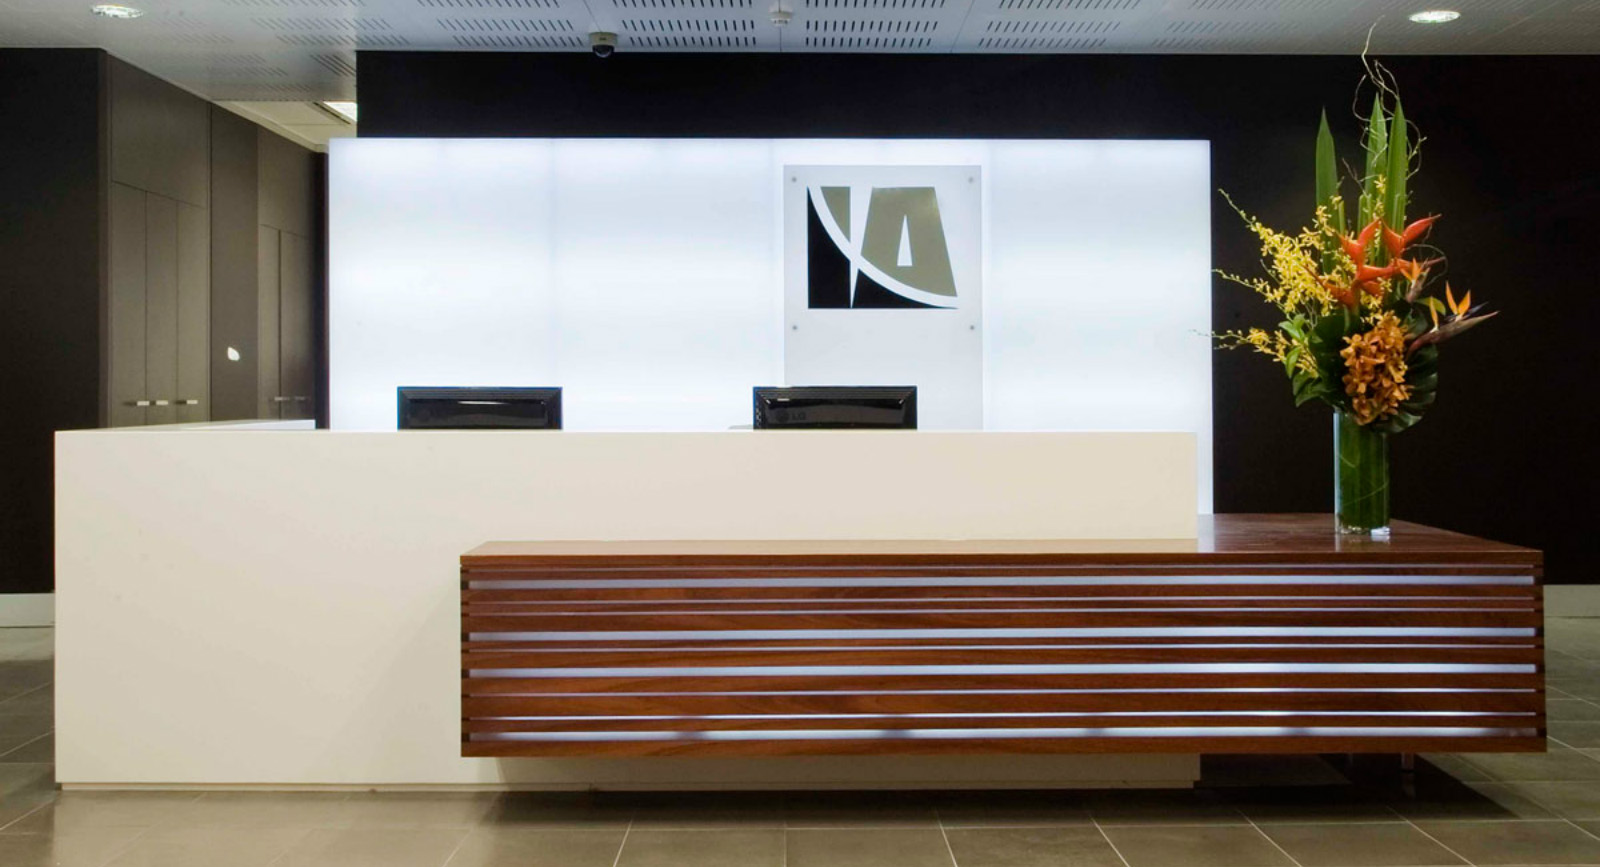 Best Reception Area Images On Pinterest Reception Counter